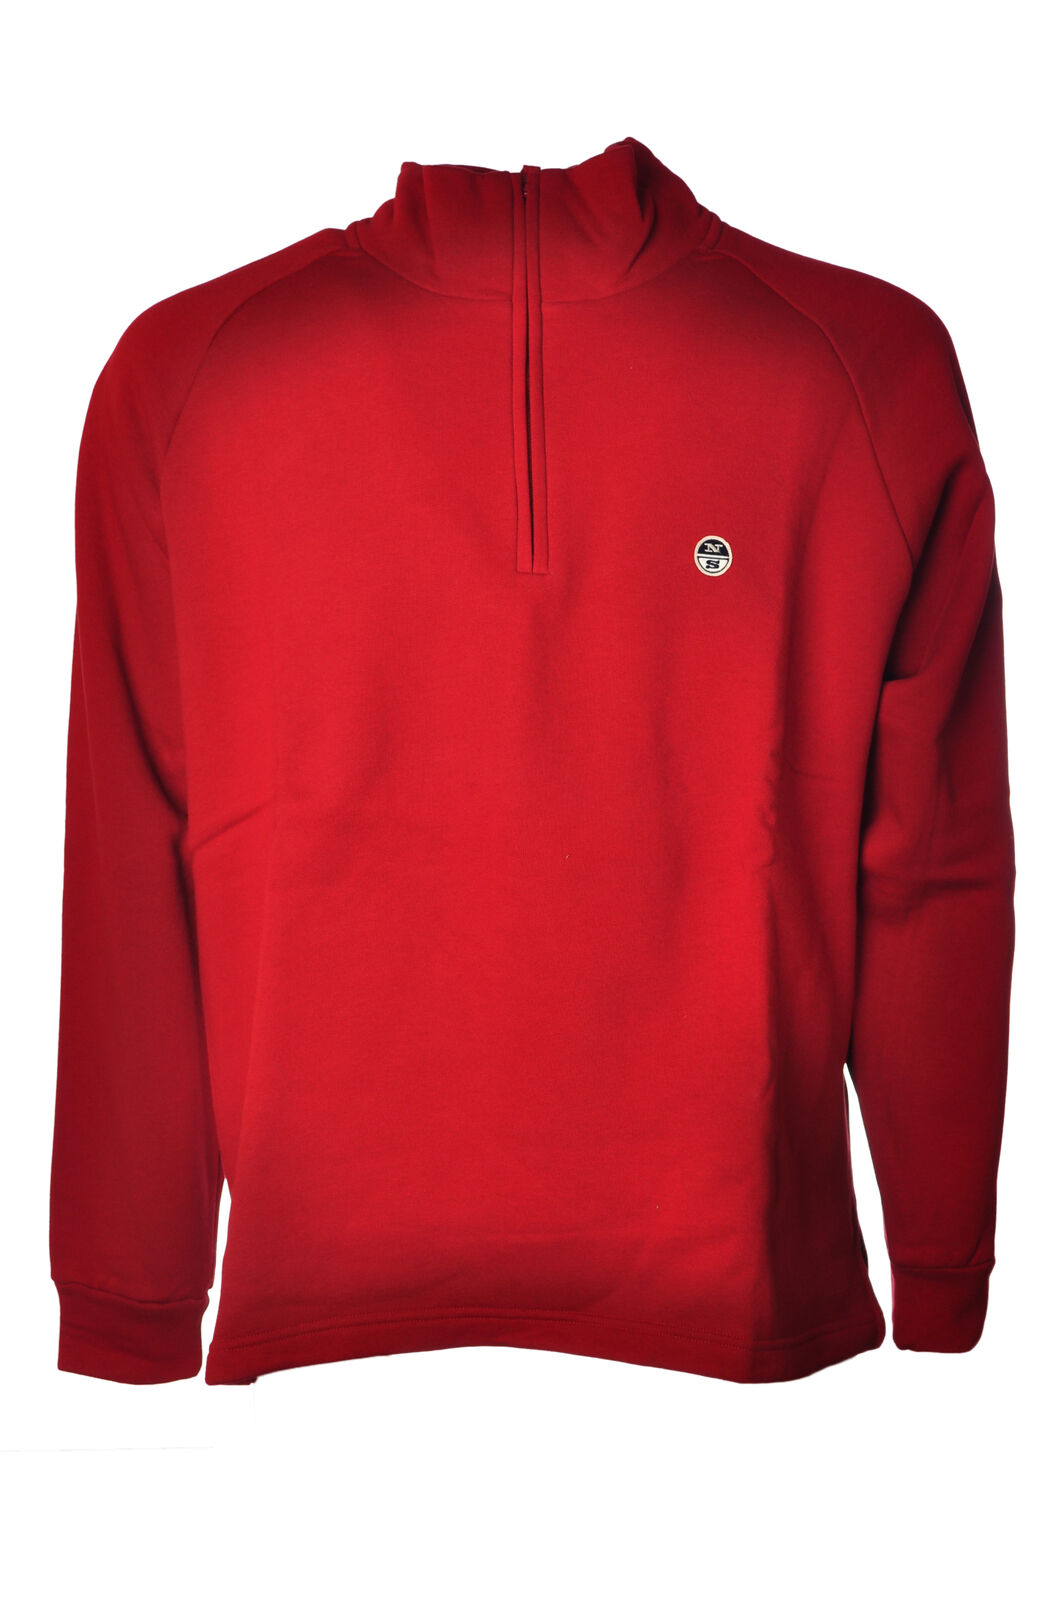 North Sails  -  Polo - Male - Red - 2973503A183636